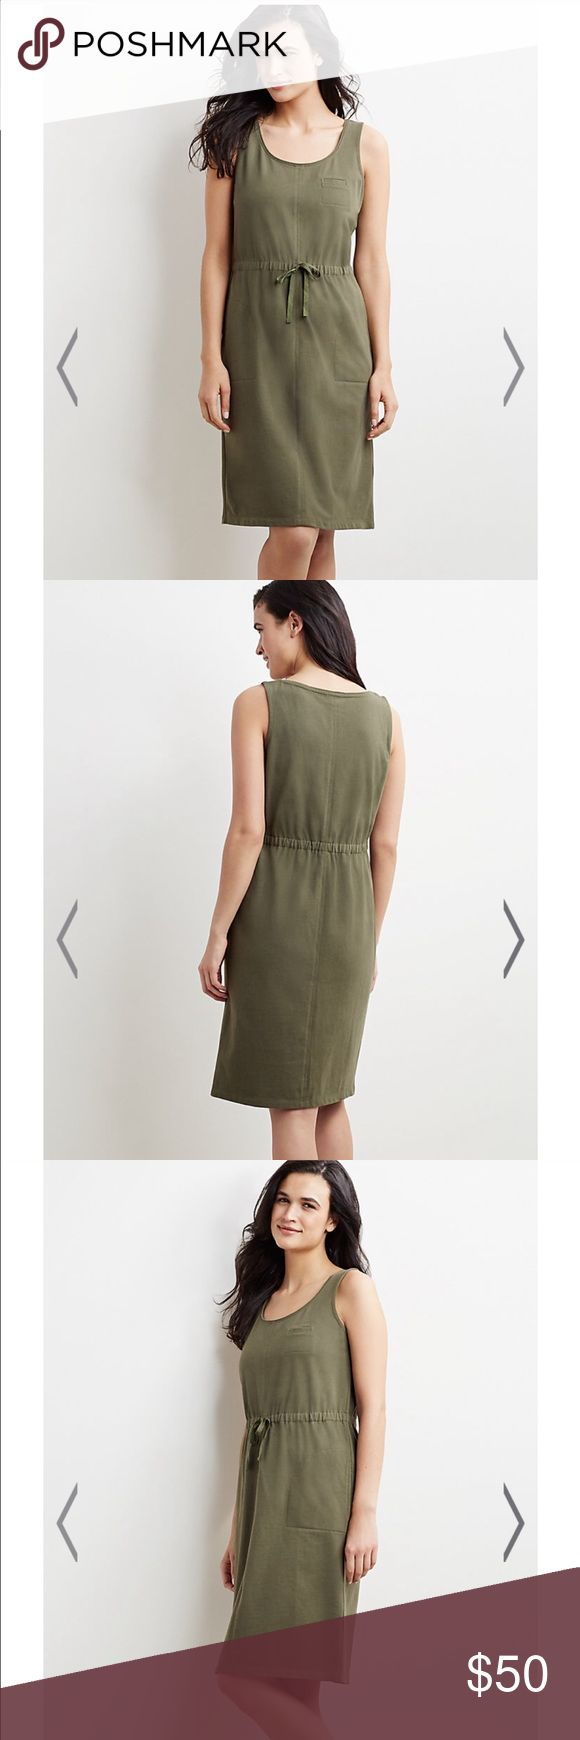 J. Jill Army Green Safari Knit Dress w/ Pockets Lightly worn. Pockets. Drawstring waist. This size is sold out online. J. Jill Dresses